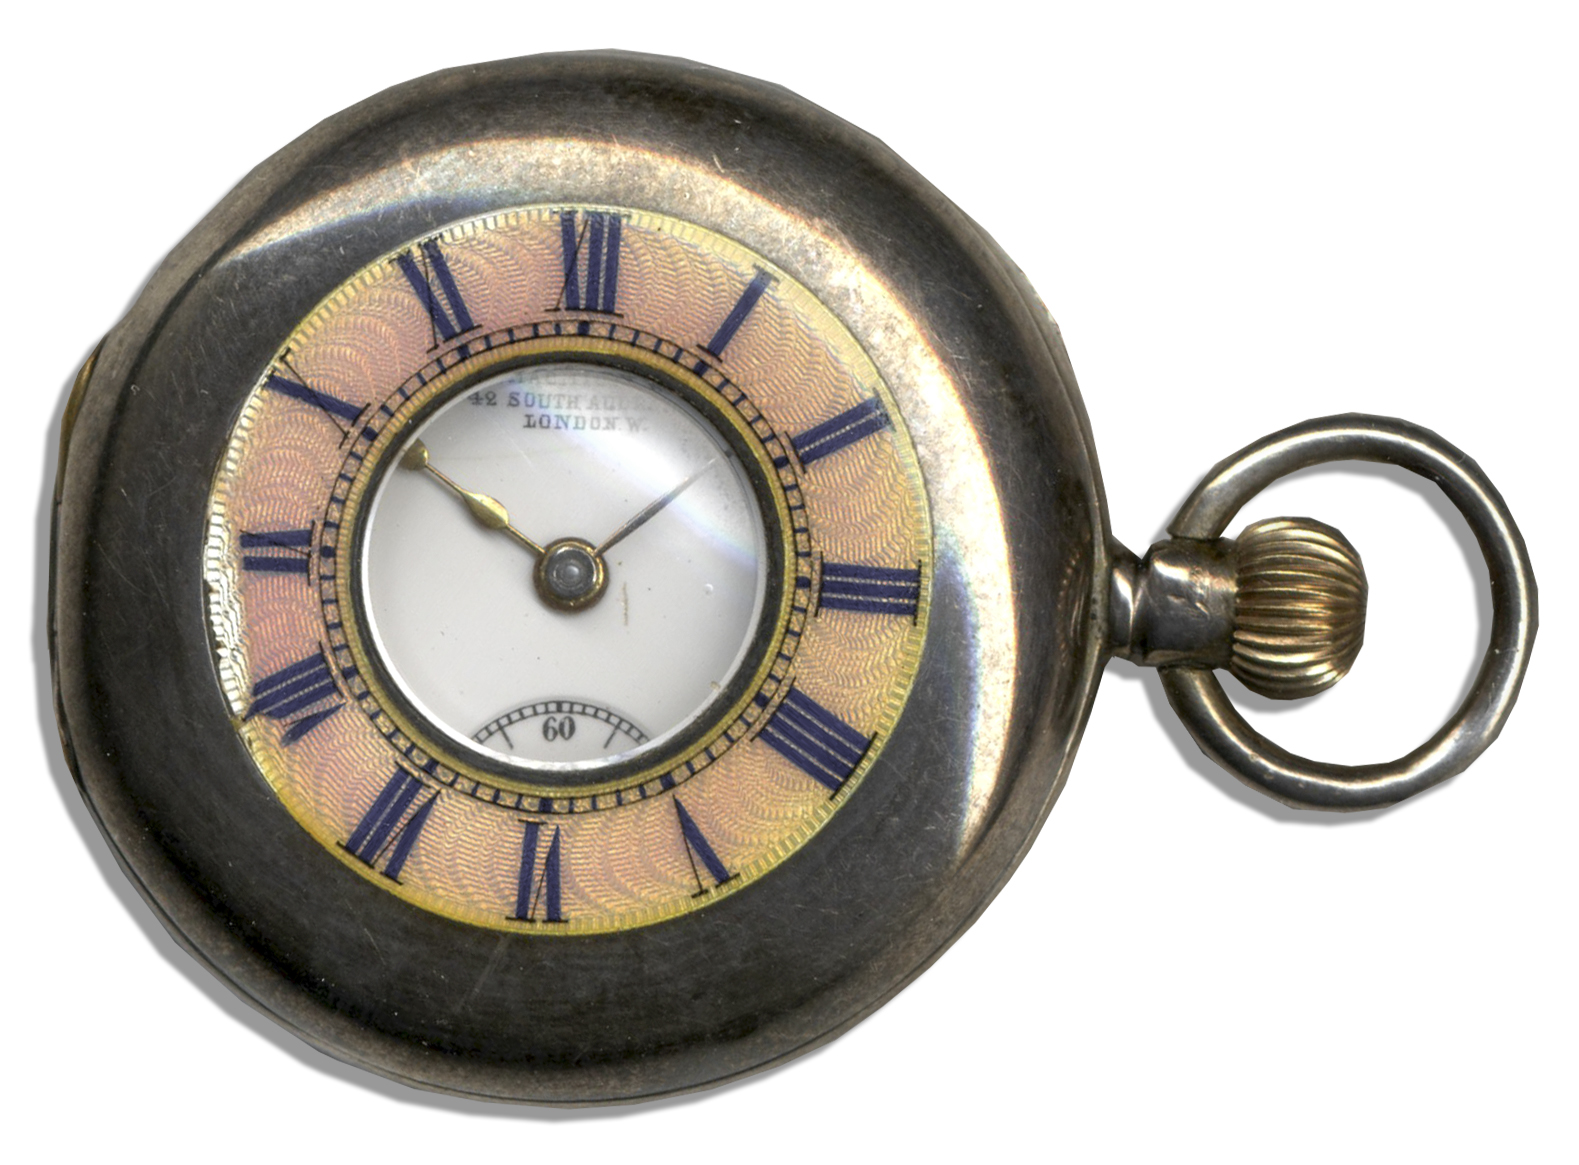 King Edward Memorabilia Fob Watch Owned by The Duke & Duchess of Windsor -- Beautiful Timepiece by J. MacMichael -- In Metal Case With Guilloche & Enamel Lid